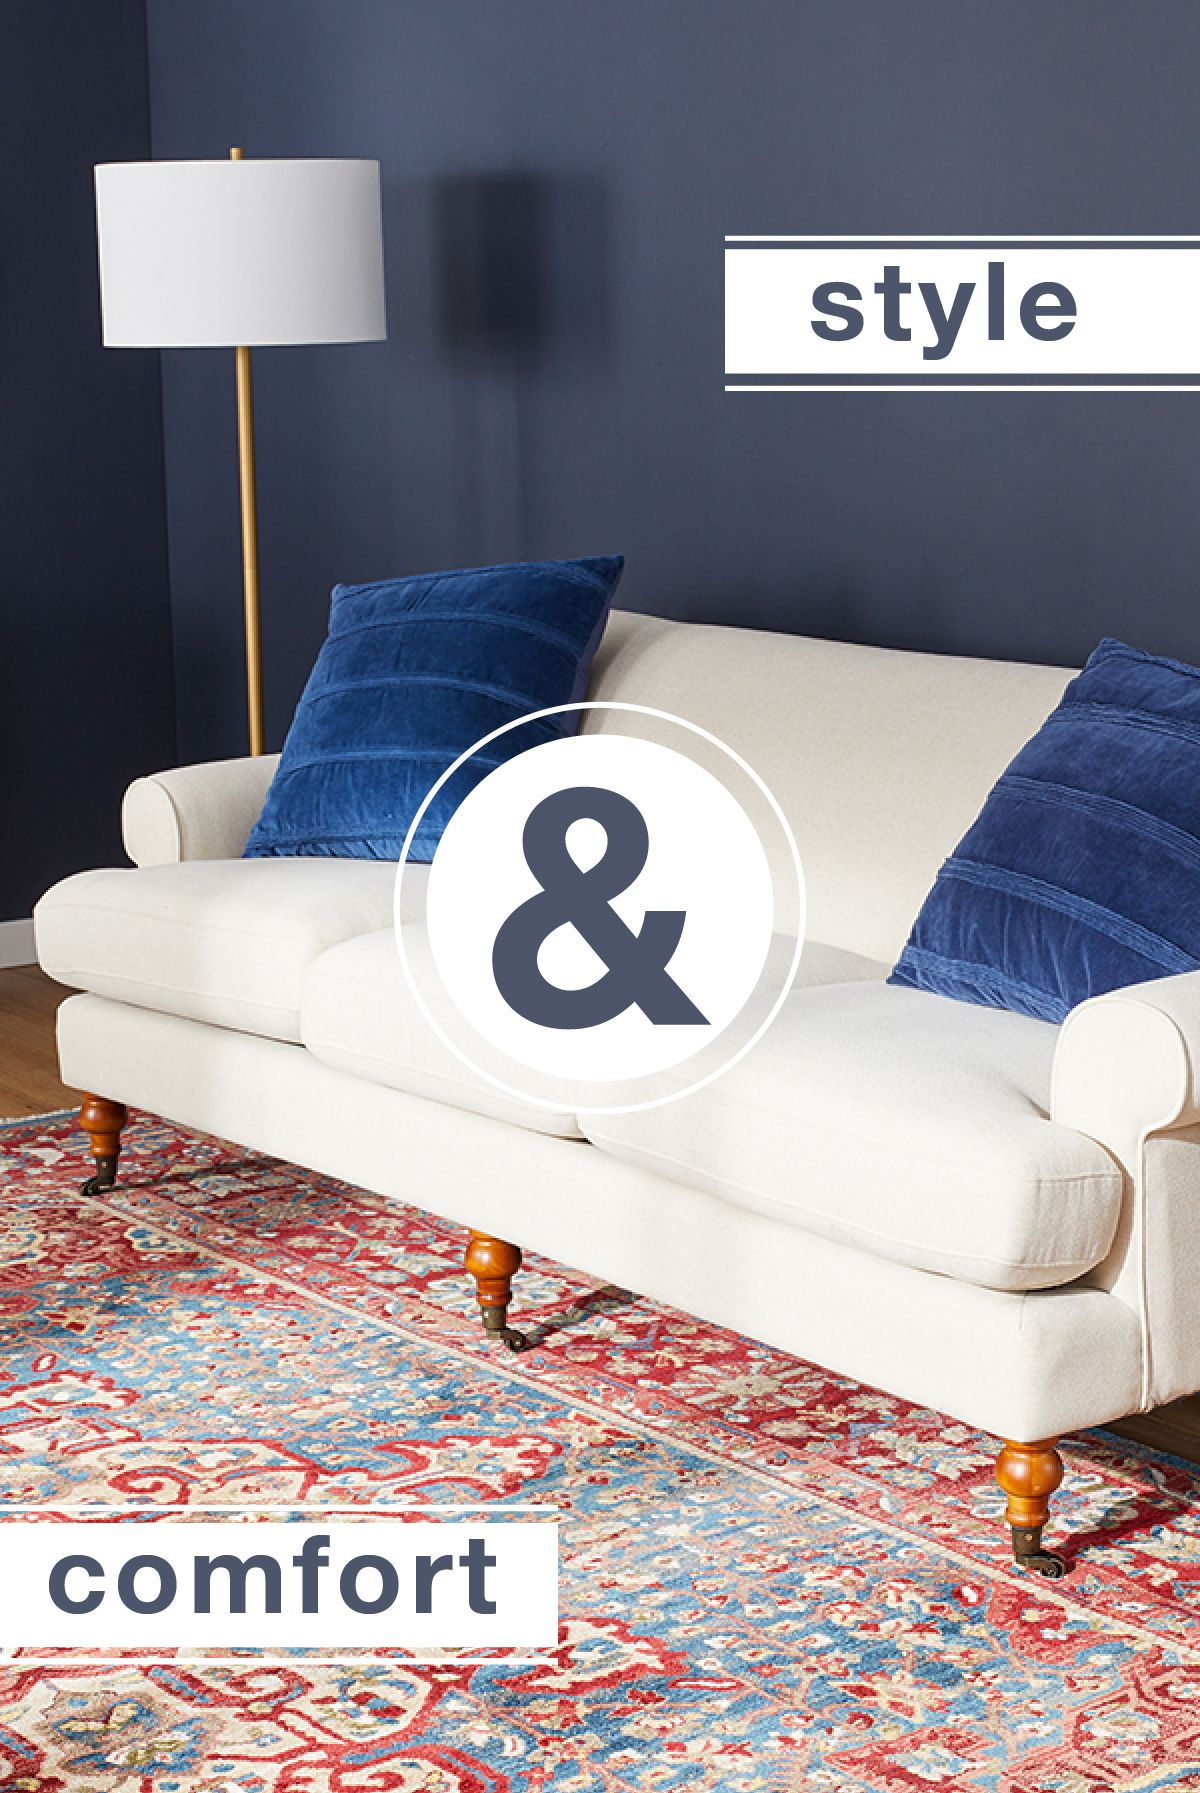 If you're in need of new seating for your living room, look no further! Overstock has gorgeous sofas and couches to match and style of space, at prices that match and budget! #sofasandcouches #livingroomfurniture #livingroom #sofas #couches #seating #livingroomseating #homegoods #homedecor #homestyle #home #decorating #homefurnishings #homefurniture #furniture #cozyhome #cozysofas #cozyspace